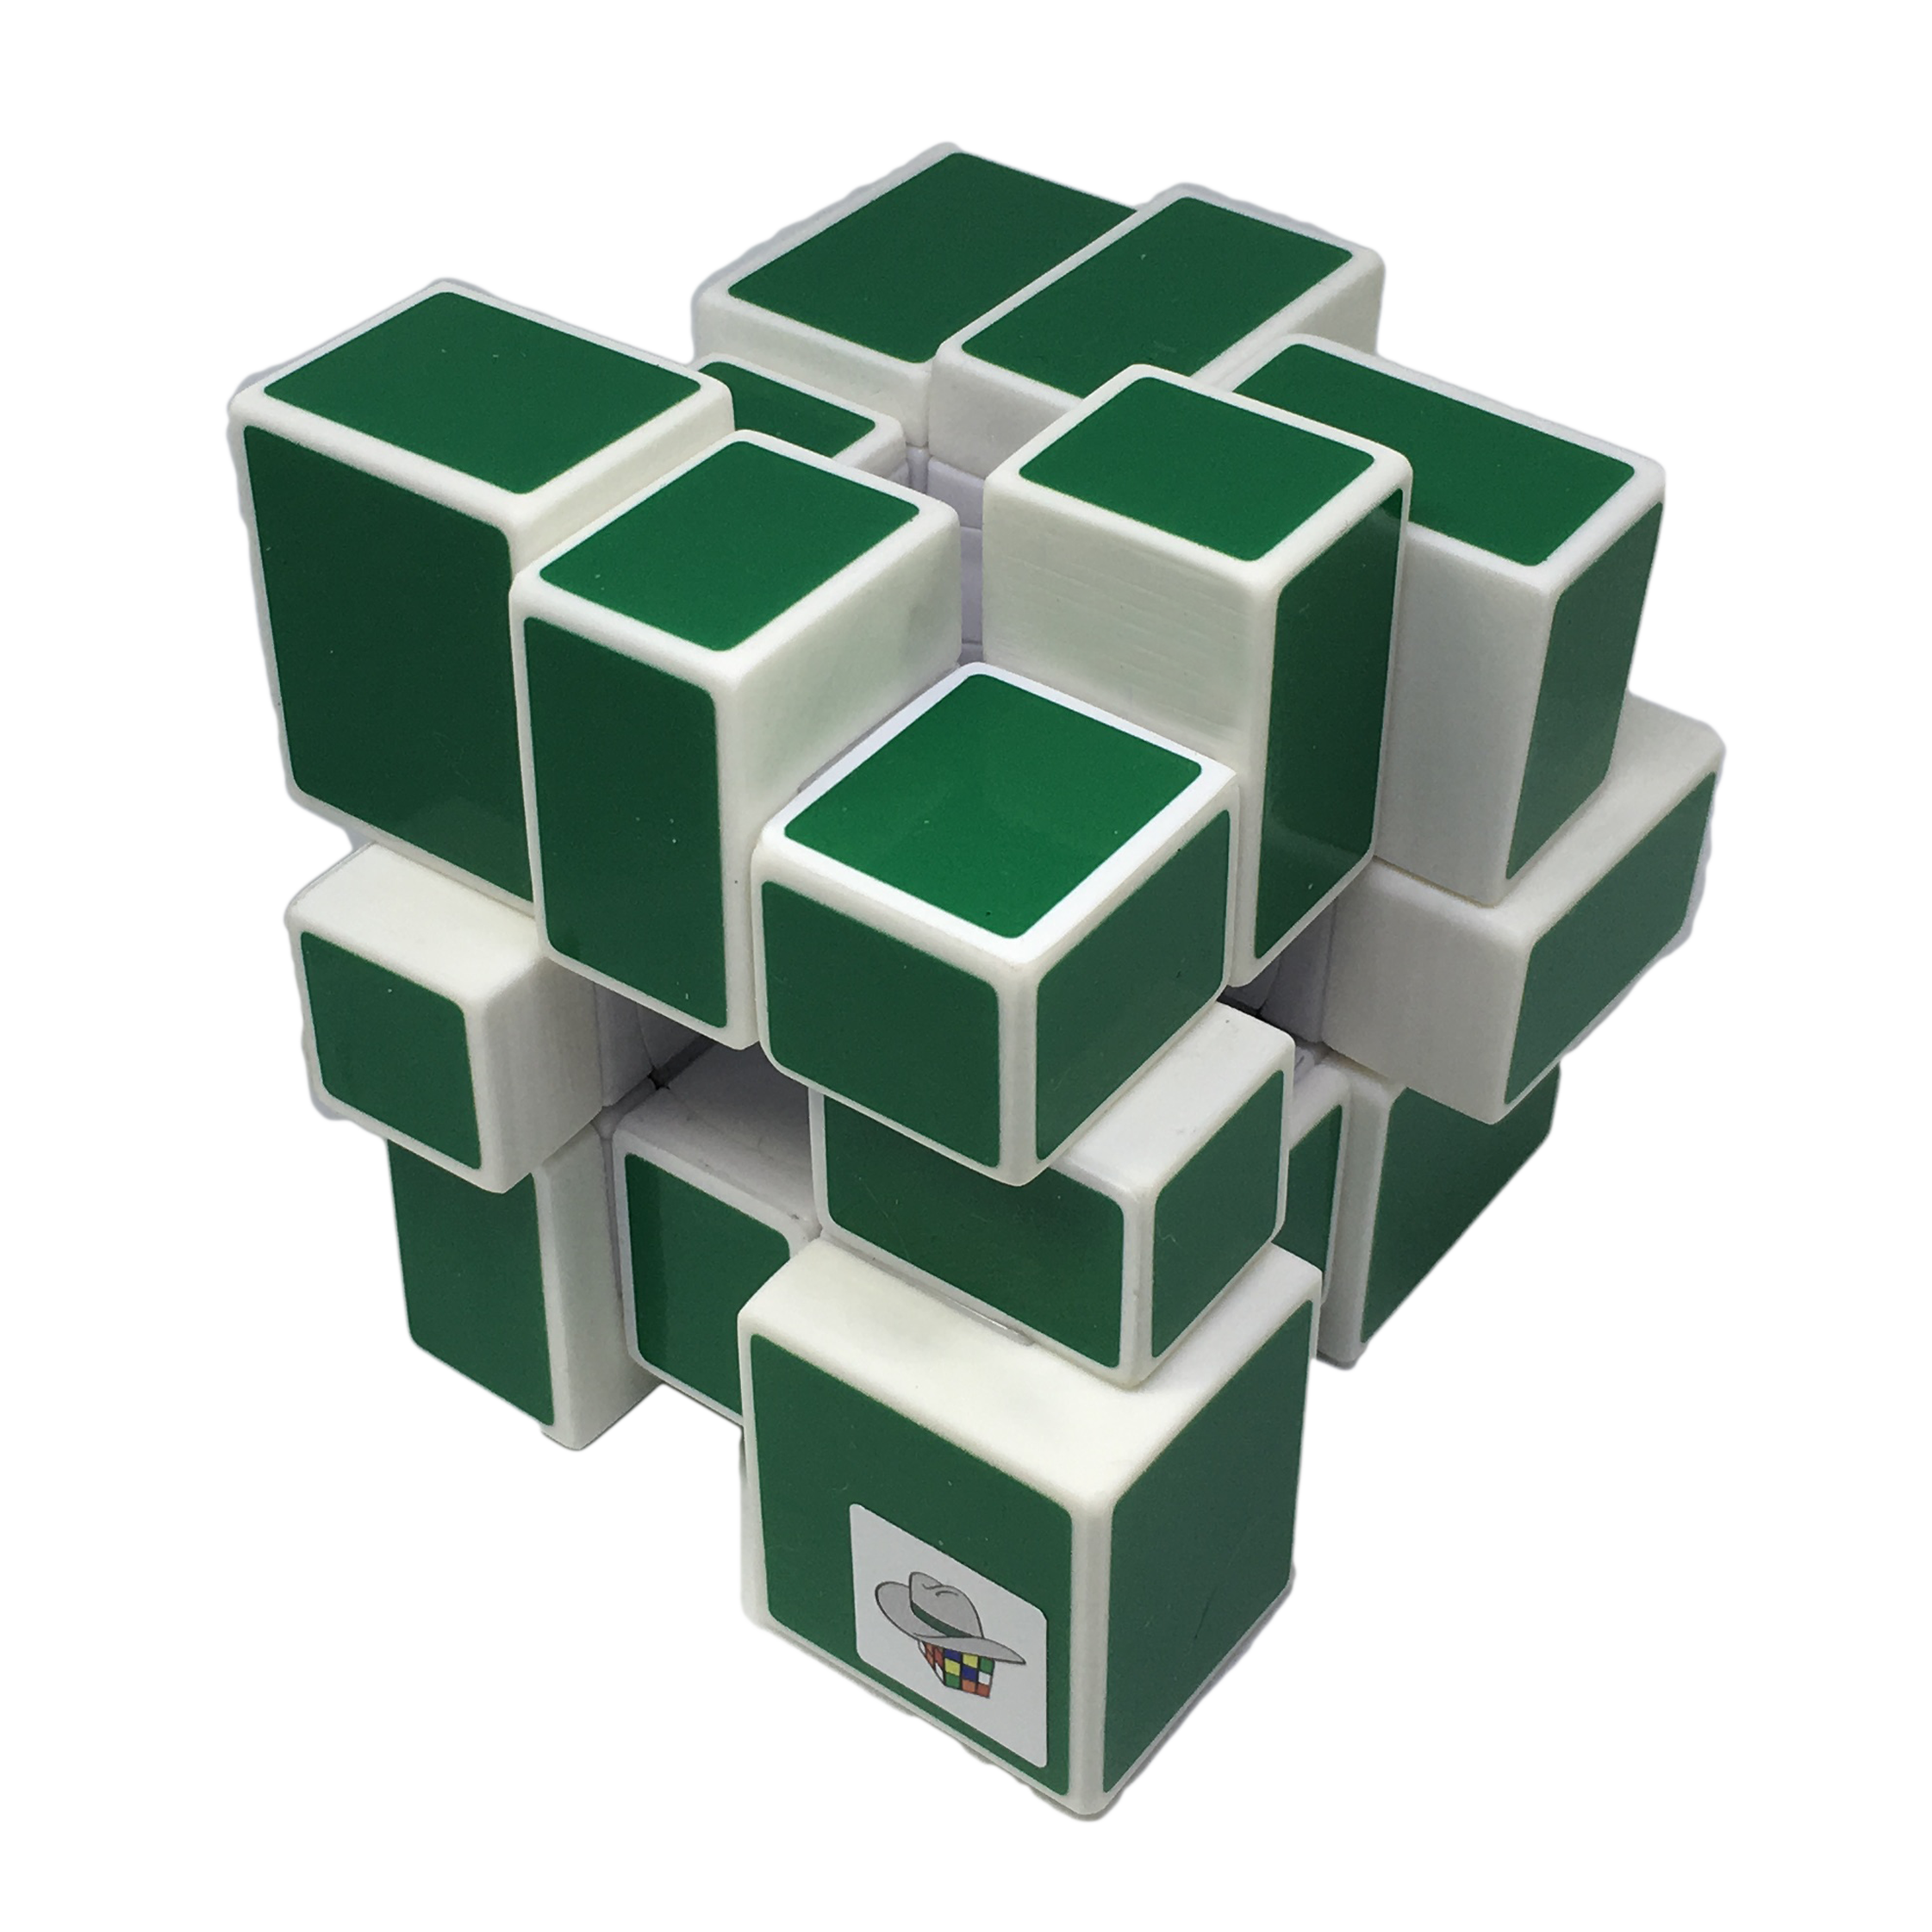 3x3x3 void bump cube 3d printable extensions twistytex for Extension cube